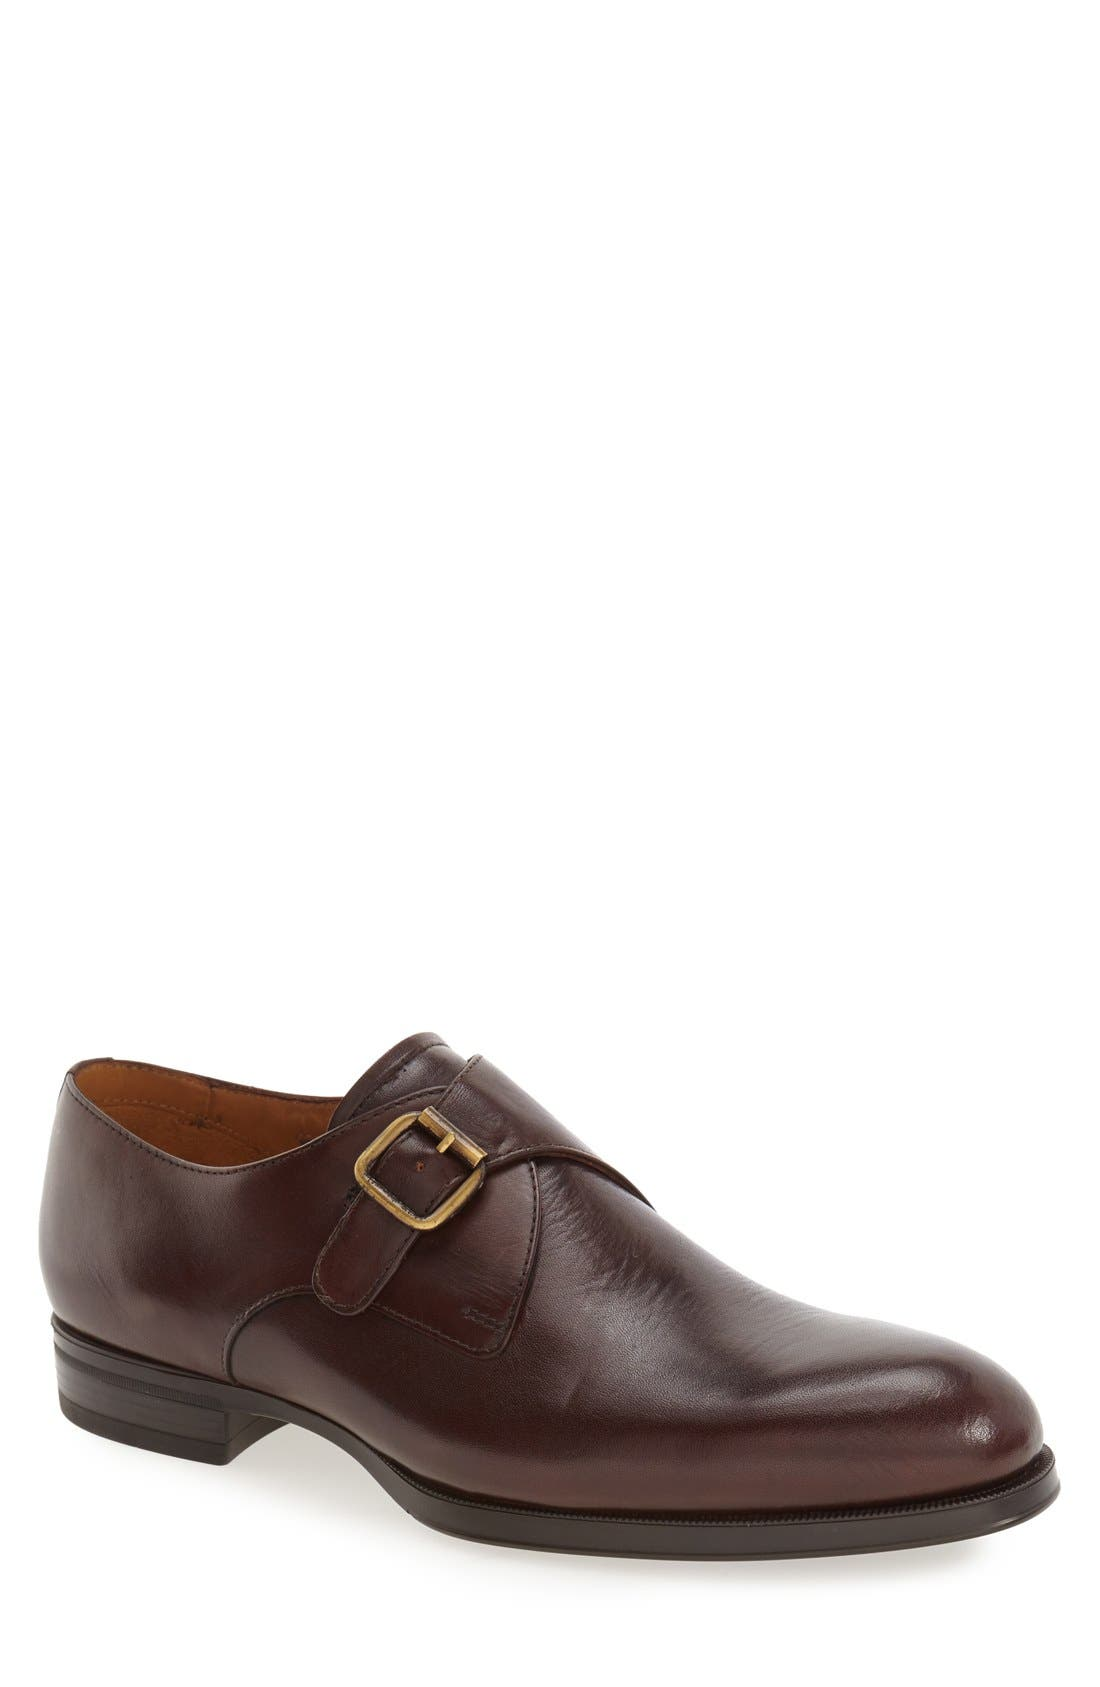 VINCE CAMUTO 'Trifolo' Monk Strap Shoe, Main, color, DARK WOODBURY LEATHER